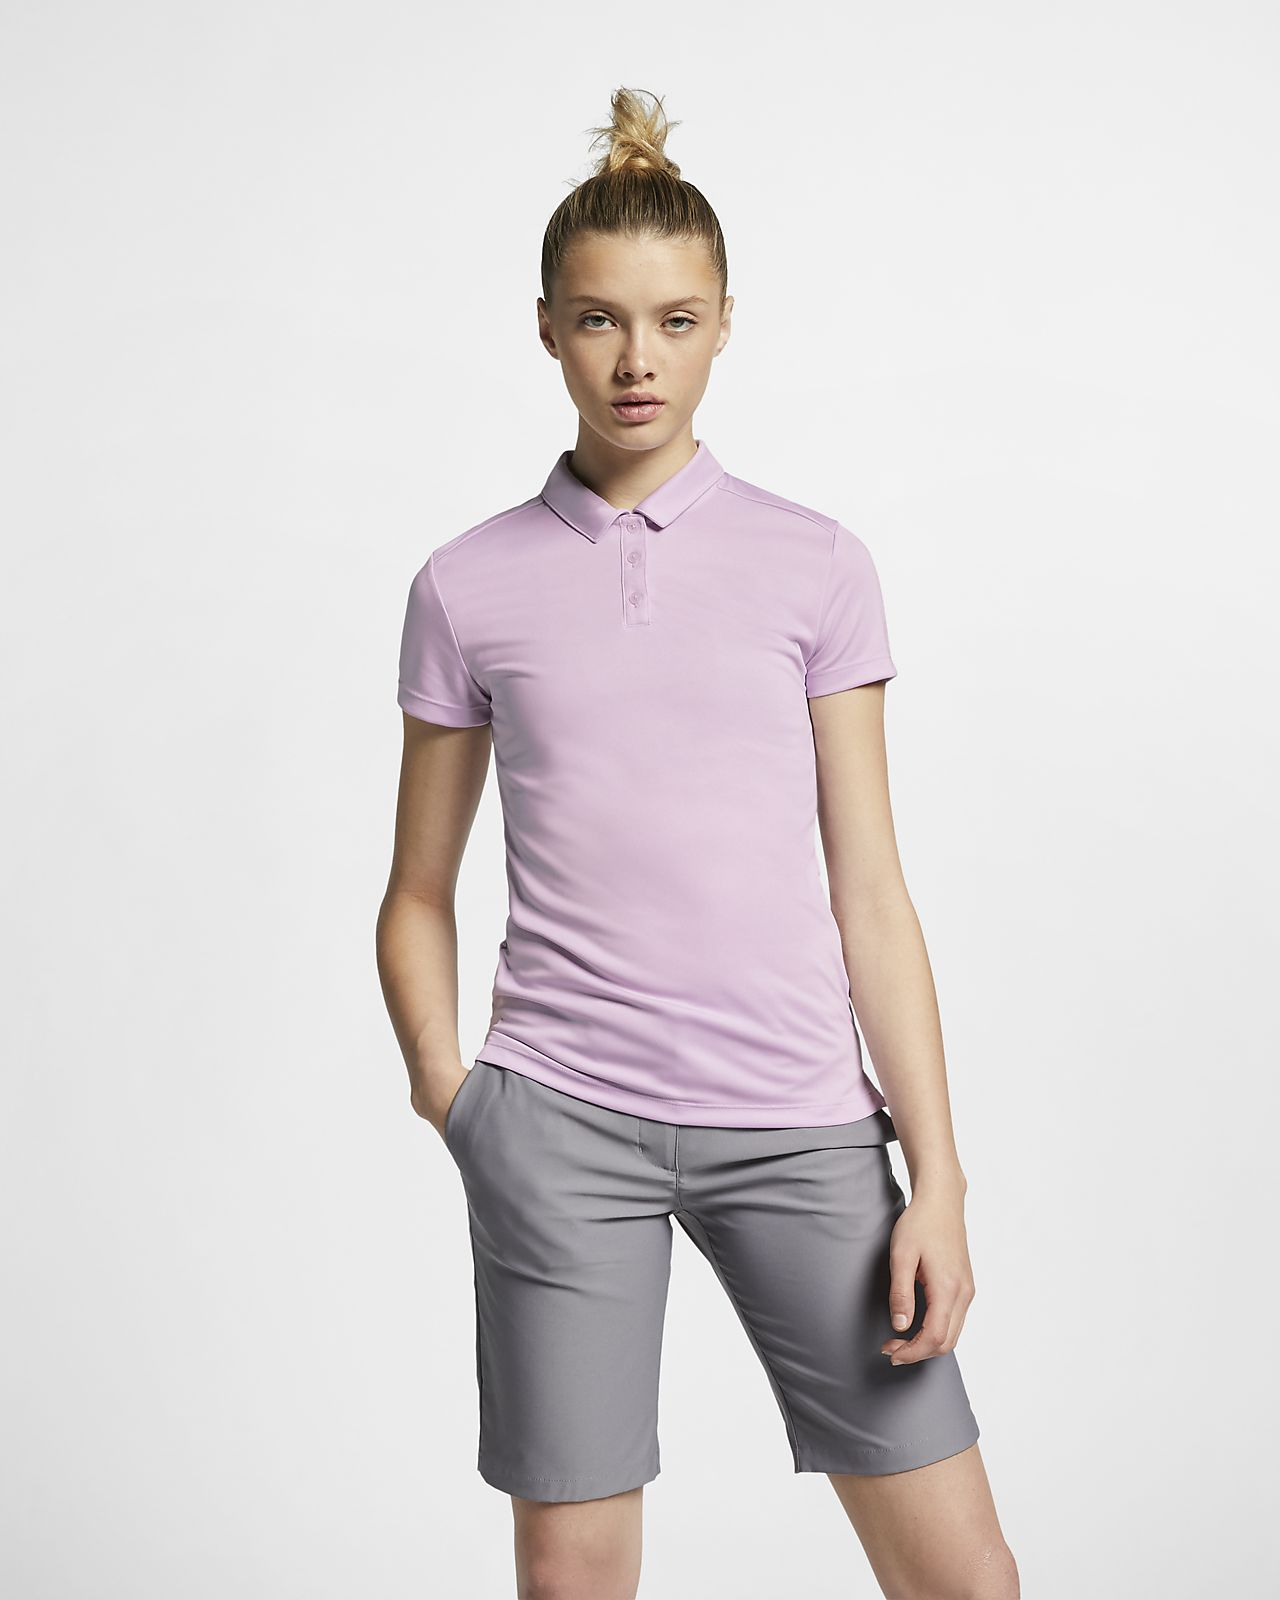 2ae01759 Nike Dri-FIT Women's Golf Polo. Nike.com